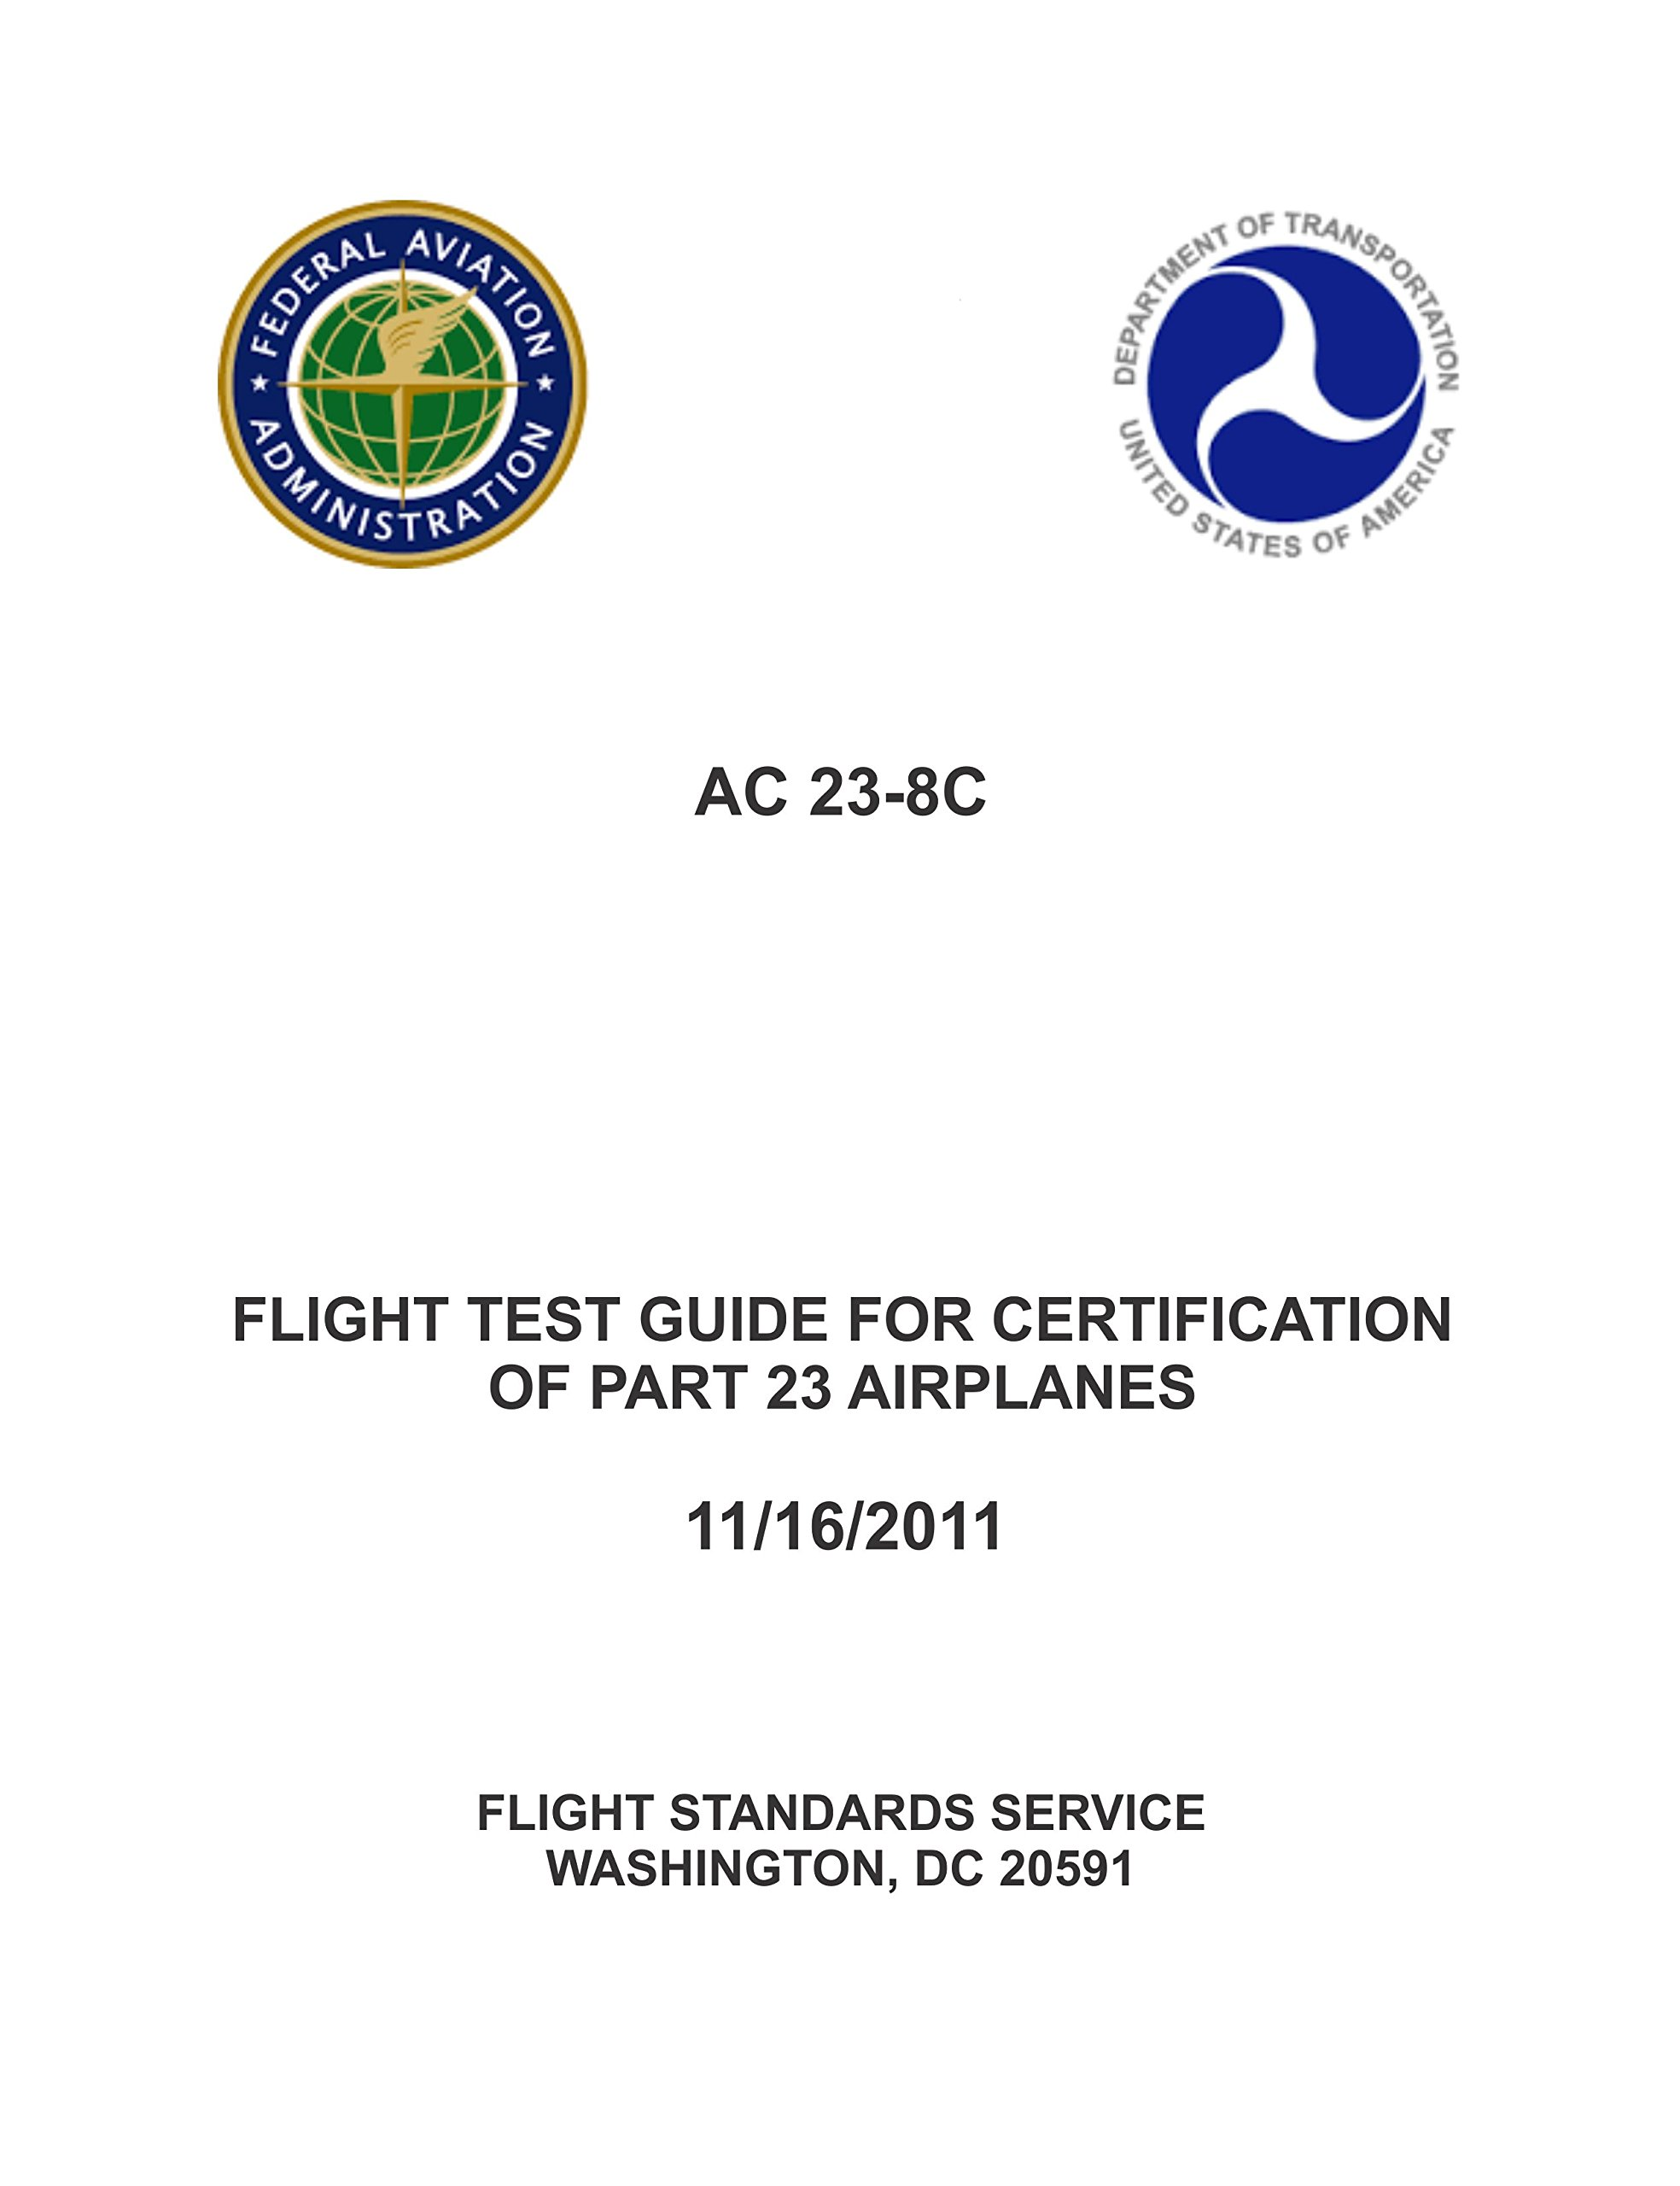 Read Online AC 23-8C Flight Test Guide for Certification of Part 23 Airplanes 11/16/2011 [Loose Leaf] PDF